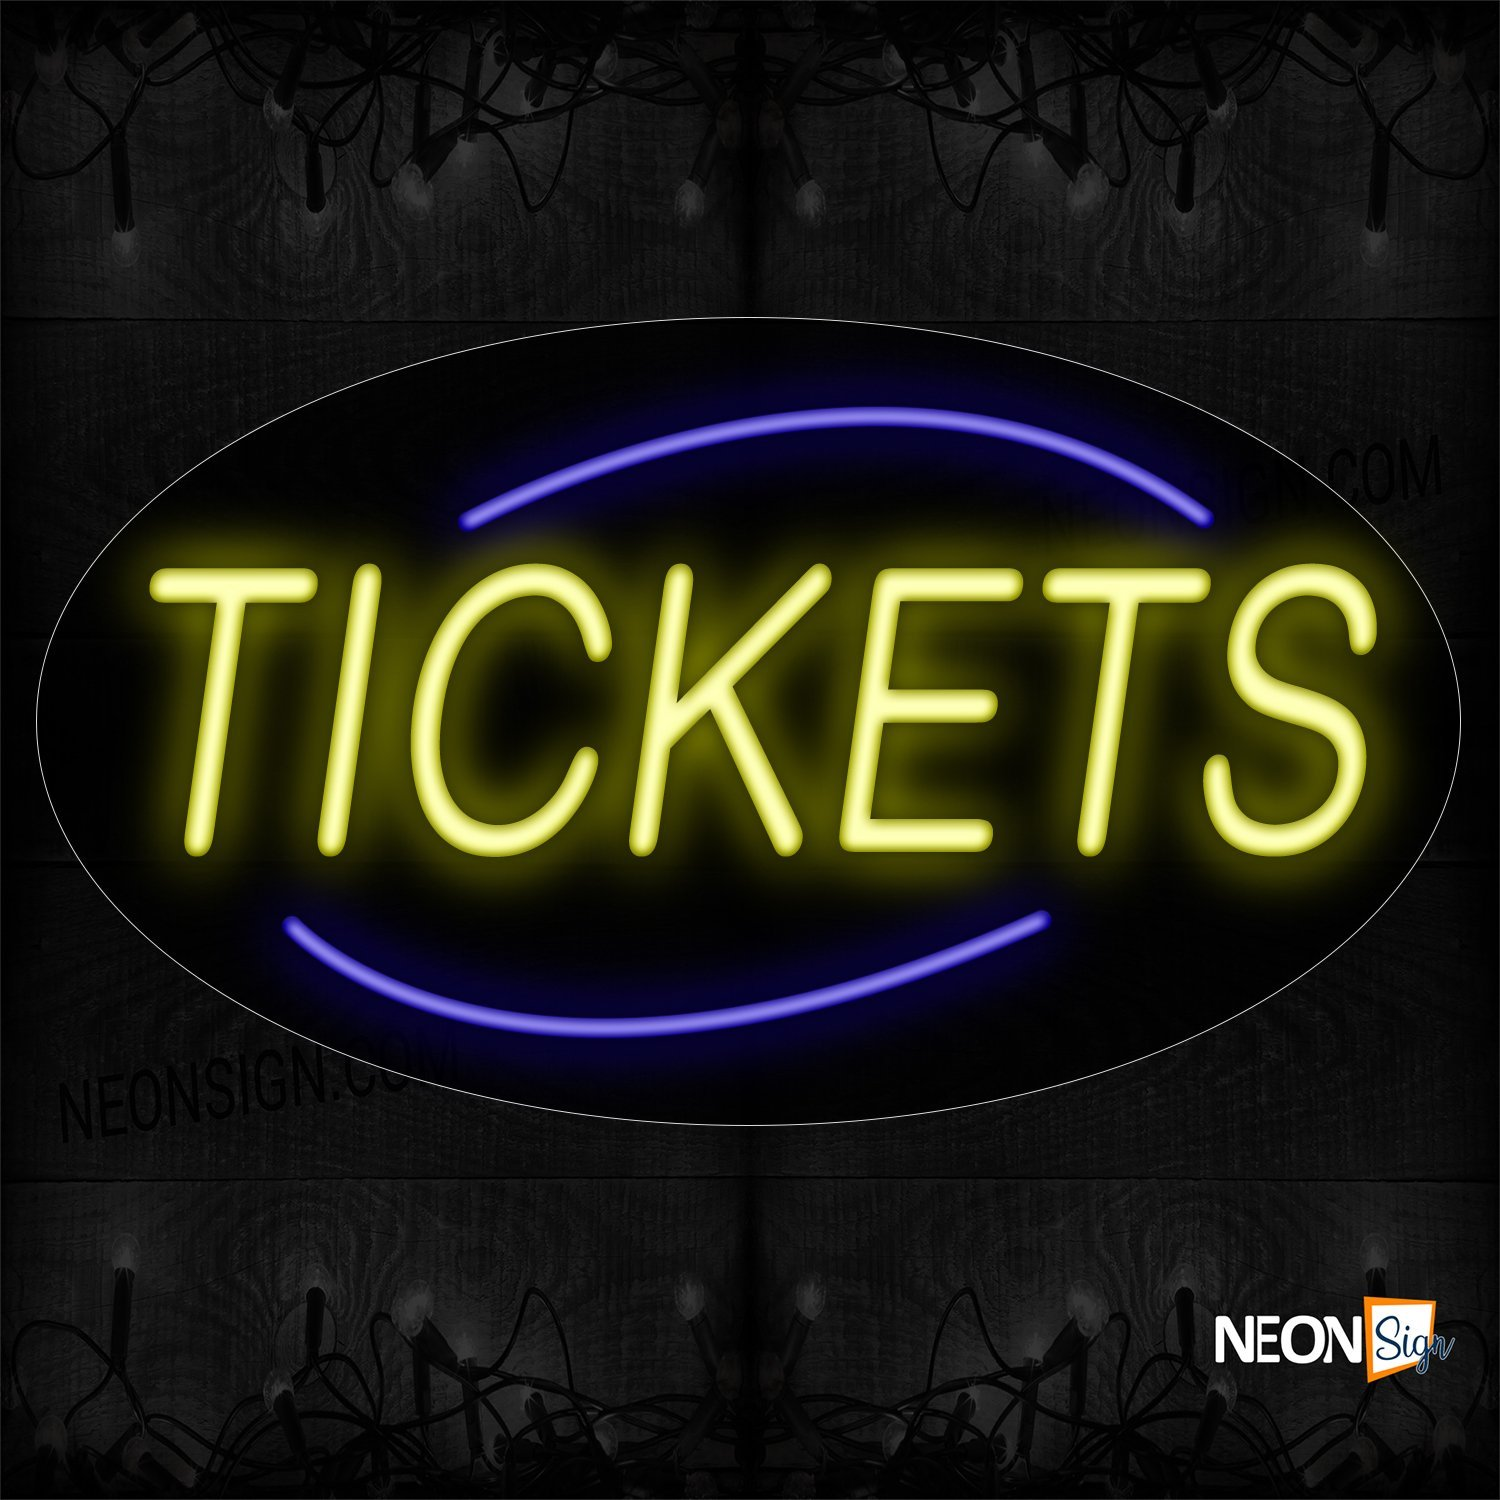 Image of 14308 Tickets With Blue Arc Border Neon Sign_17x30 Contoured Black Backing